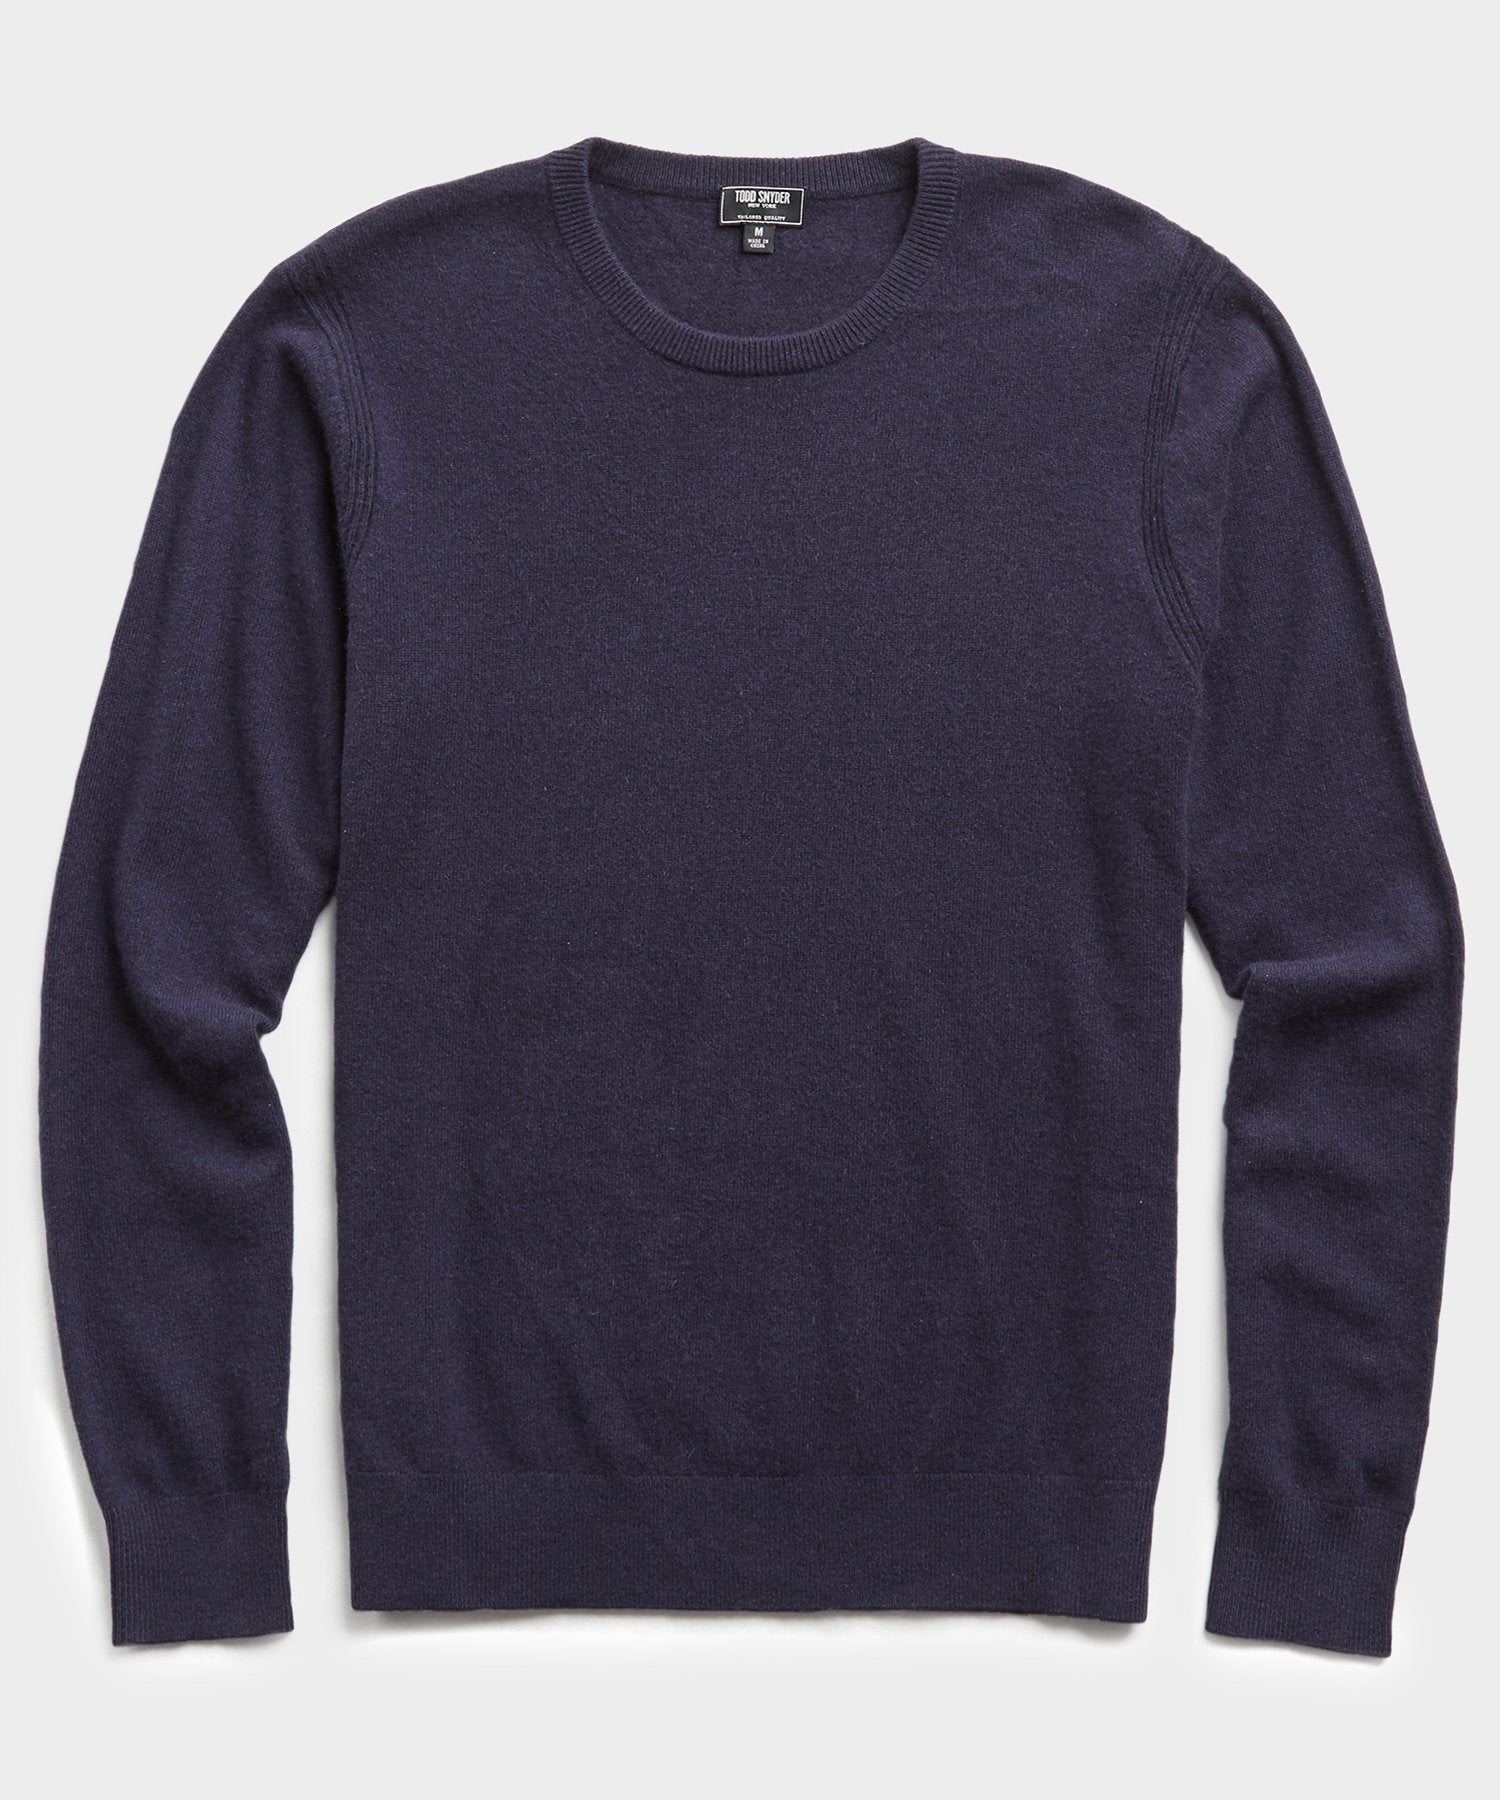 Cashmere Crewneck in Navy